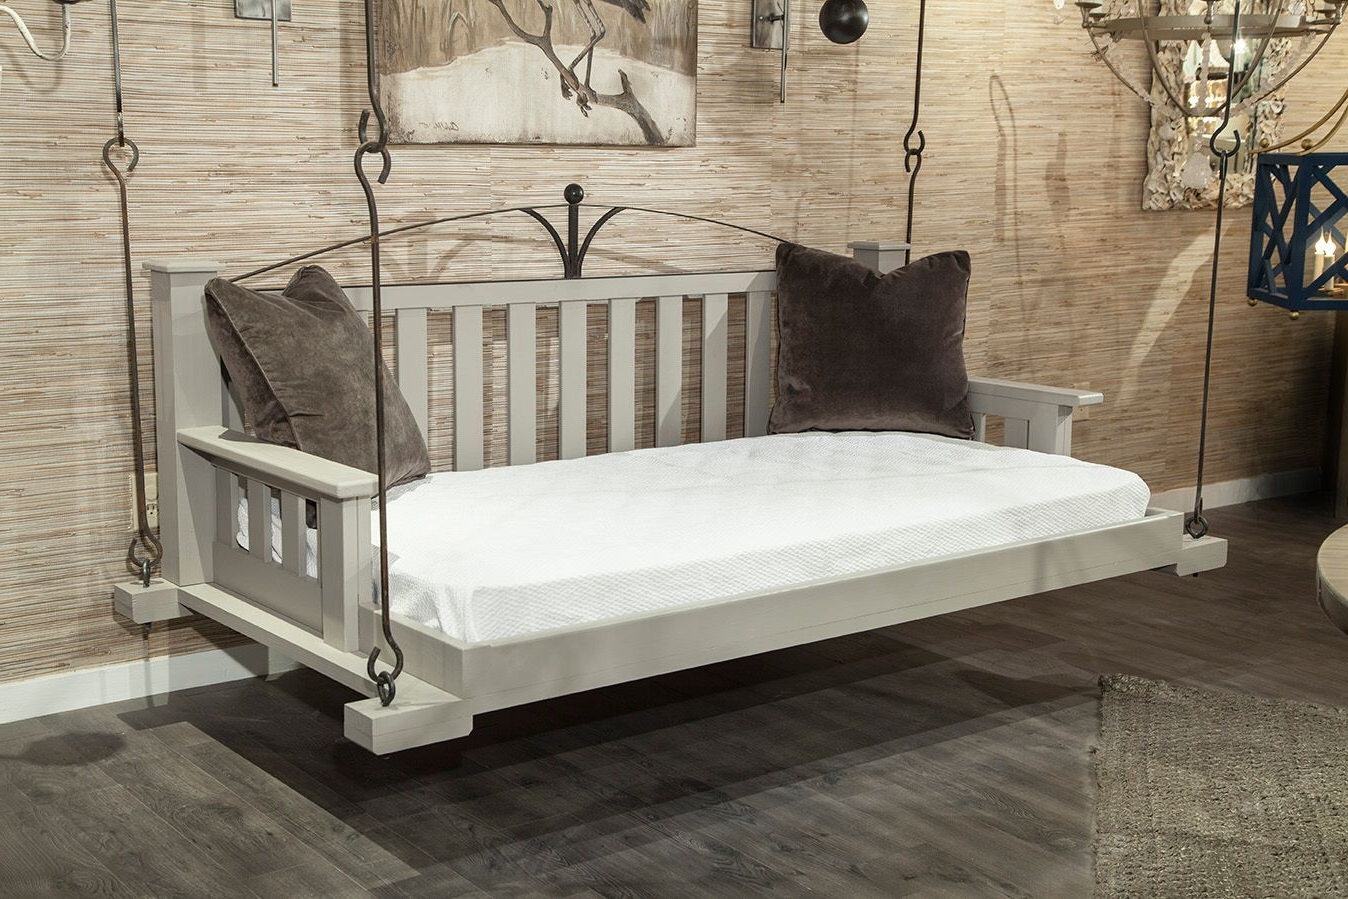 Widely Used Lco F10 Arch Swinging Day Bed In Mixed Material. Arch Within Country Style Hanging Daybed Swings (Gallery 20 of 30)